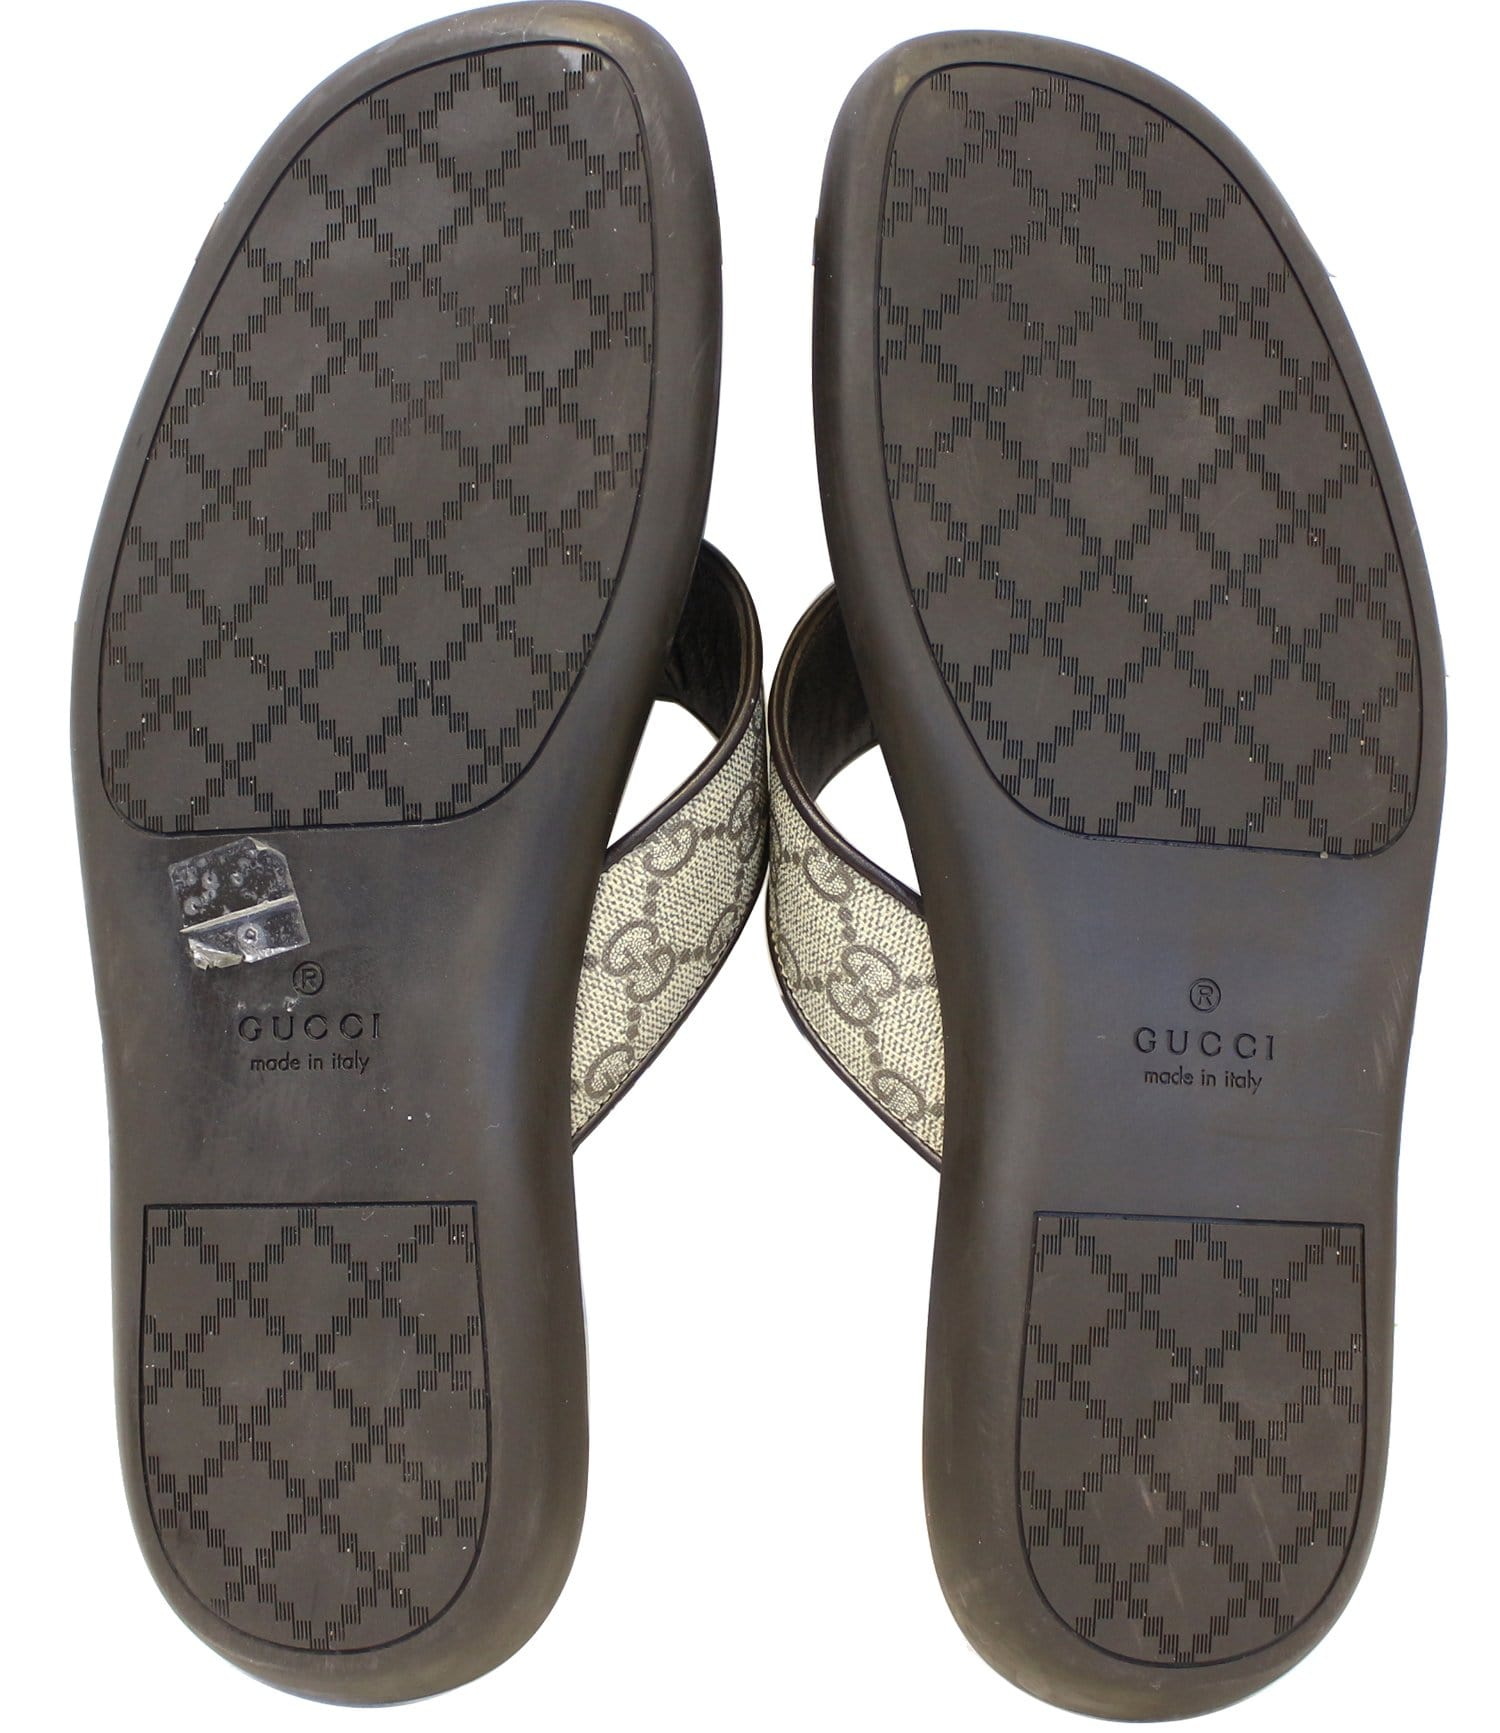 Gucci Mens Gg Supreme Canvas Flip Flops Sandals Size 8 12G-2604